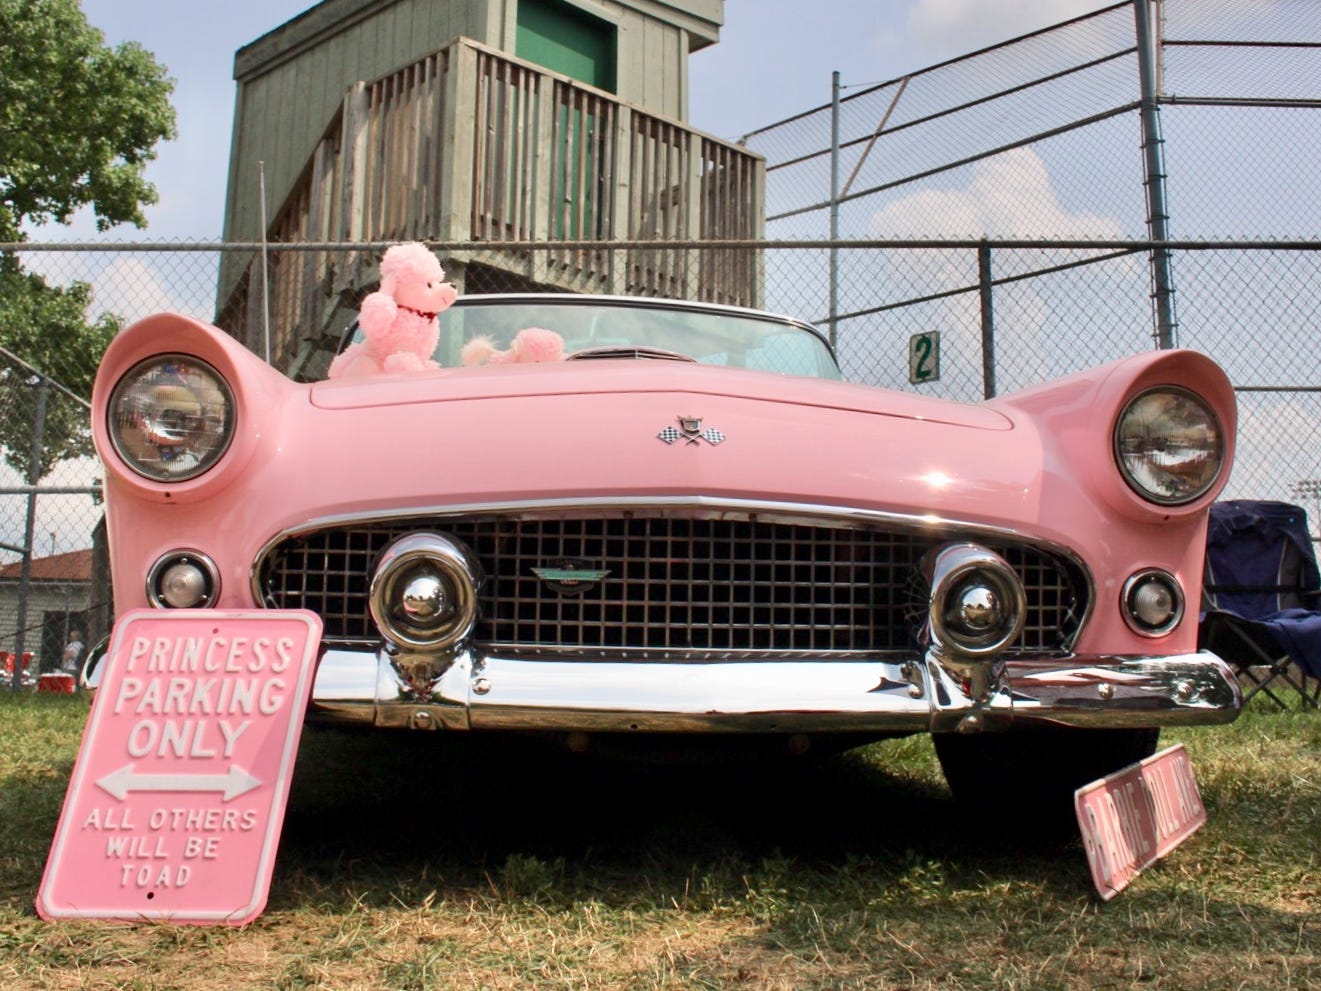 """Pat Wiegand of Macomb Twp. owns a pink 1955 Ford Thunderbird which she refers to as """"the Barbie car."""" """"It's a color that was in my poodle skirt."""""""